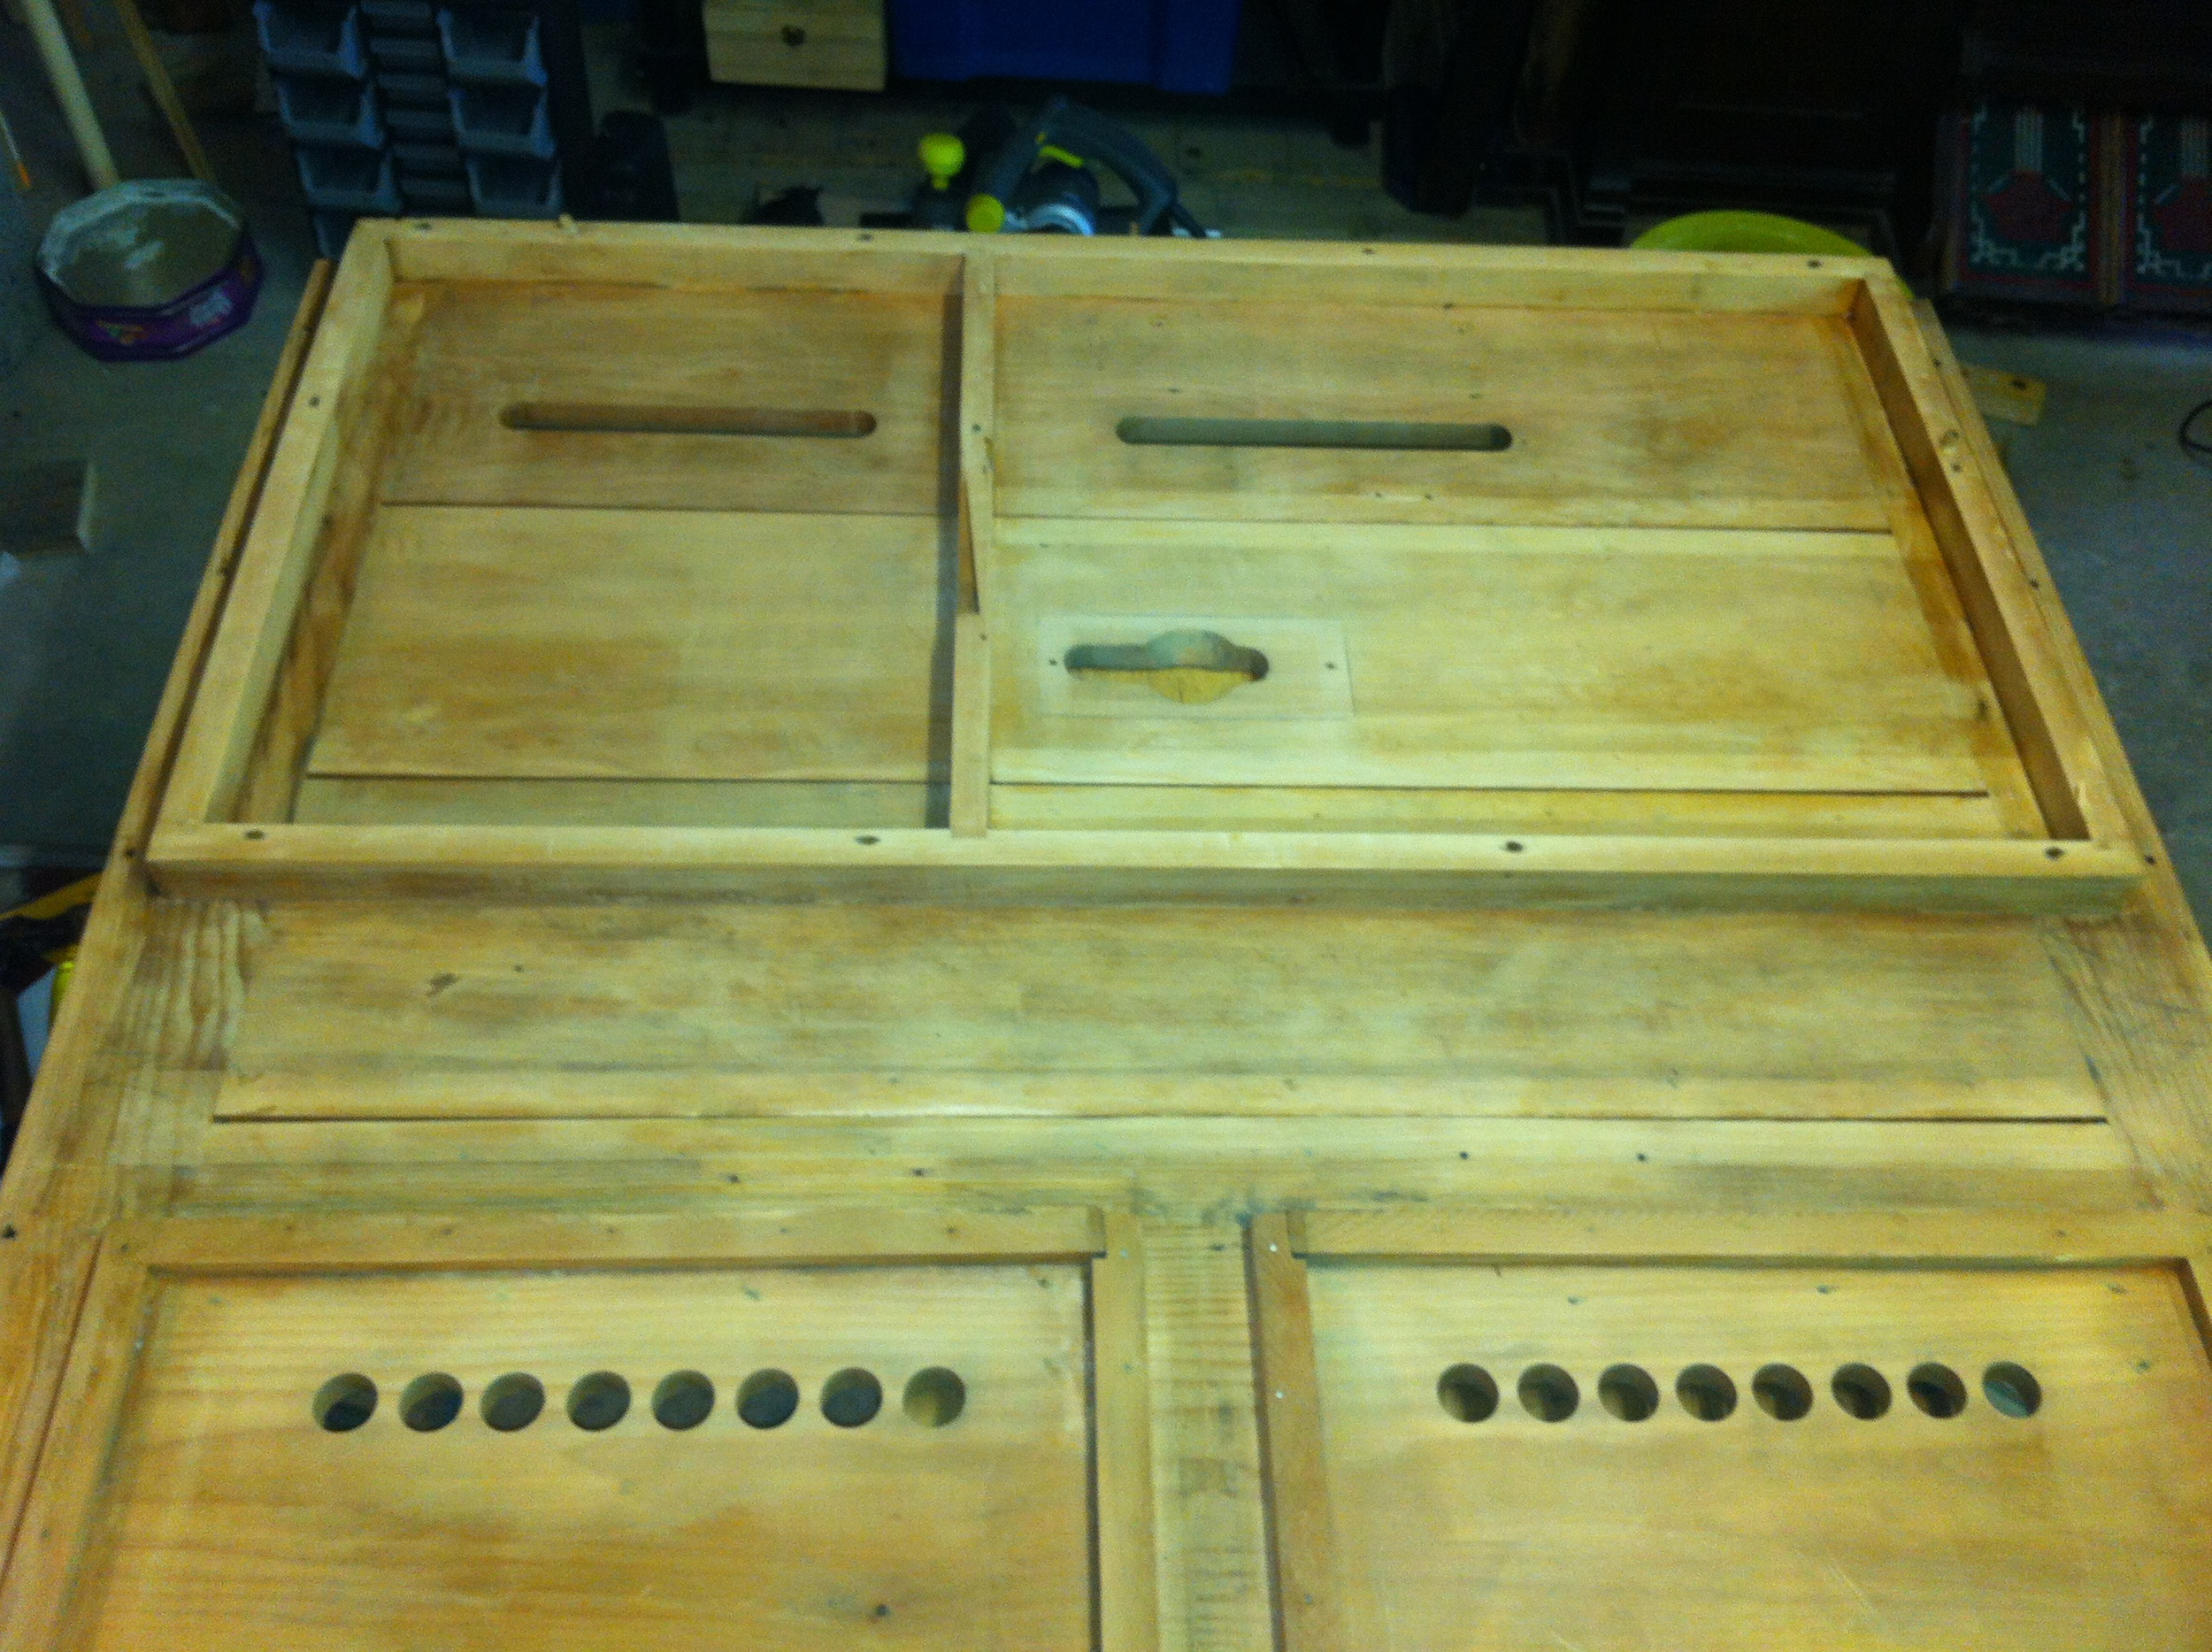 The sanded reed pan/ bellows platform